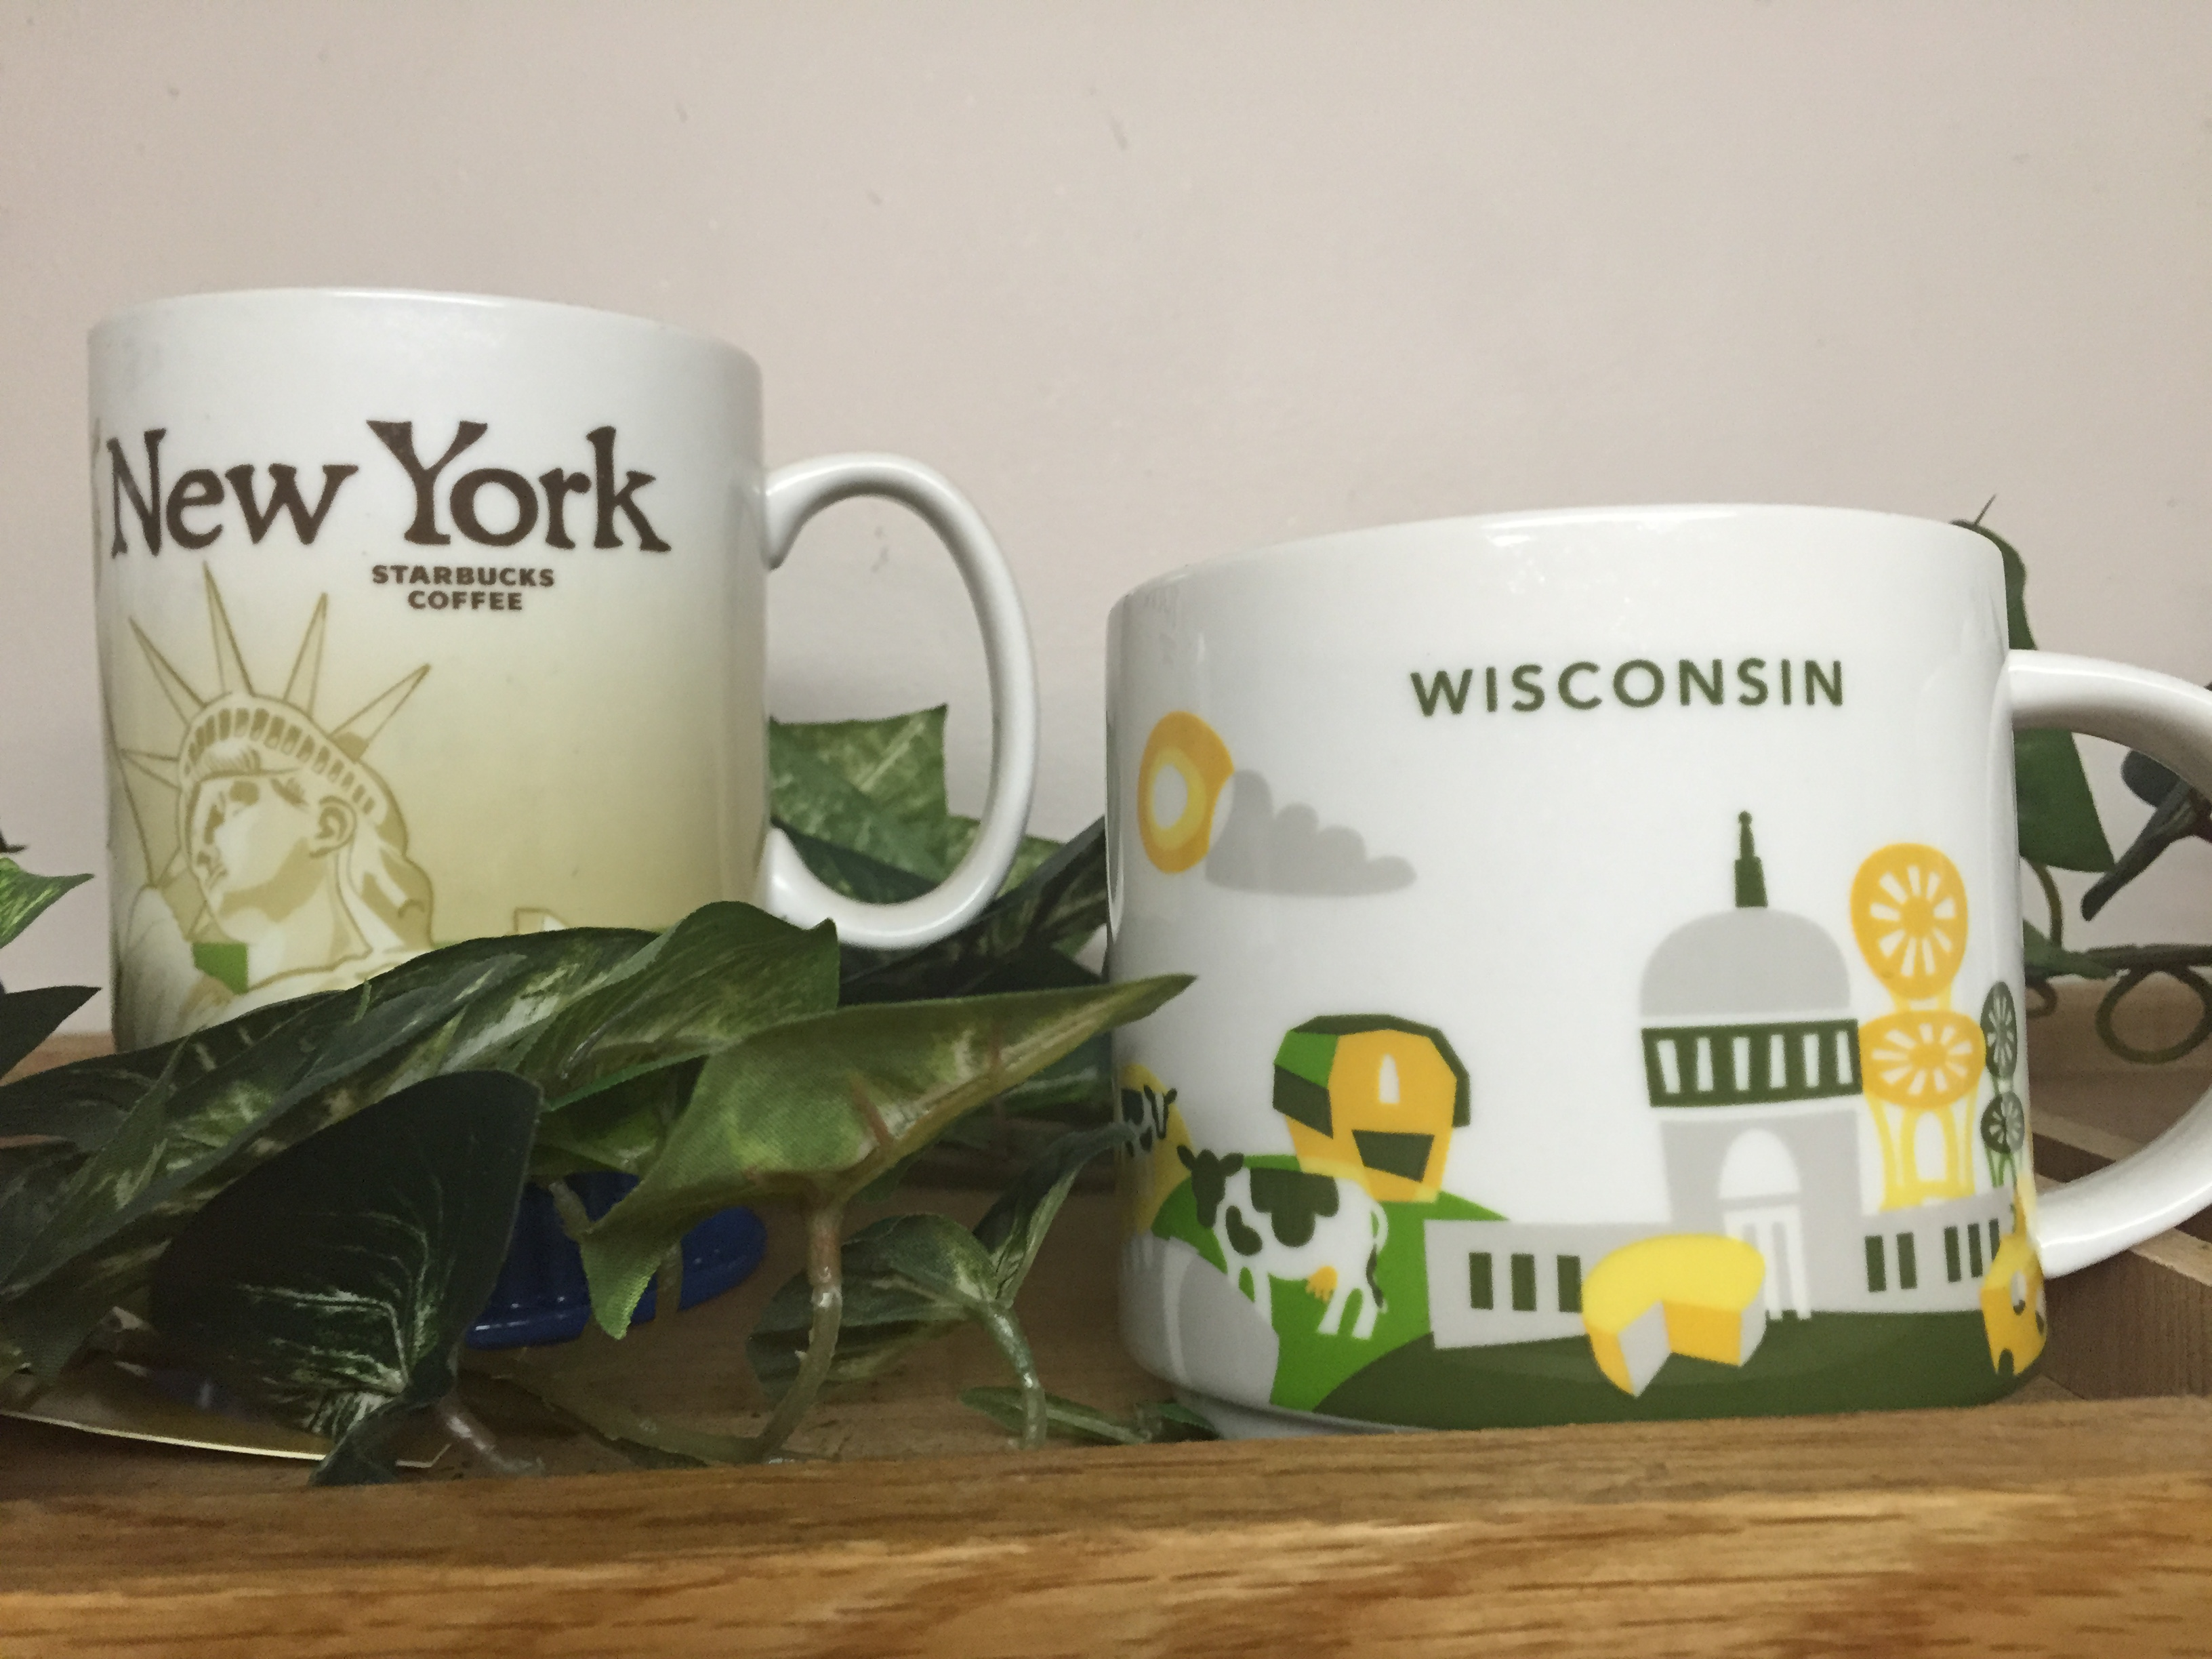 I collect Starbuck's city mugs. Each of these mugs has a story behind it.